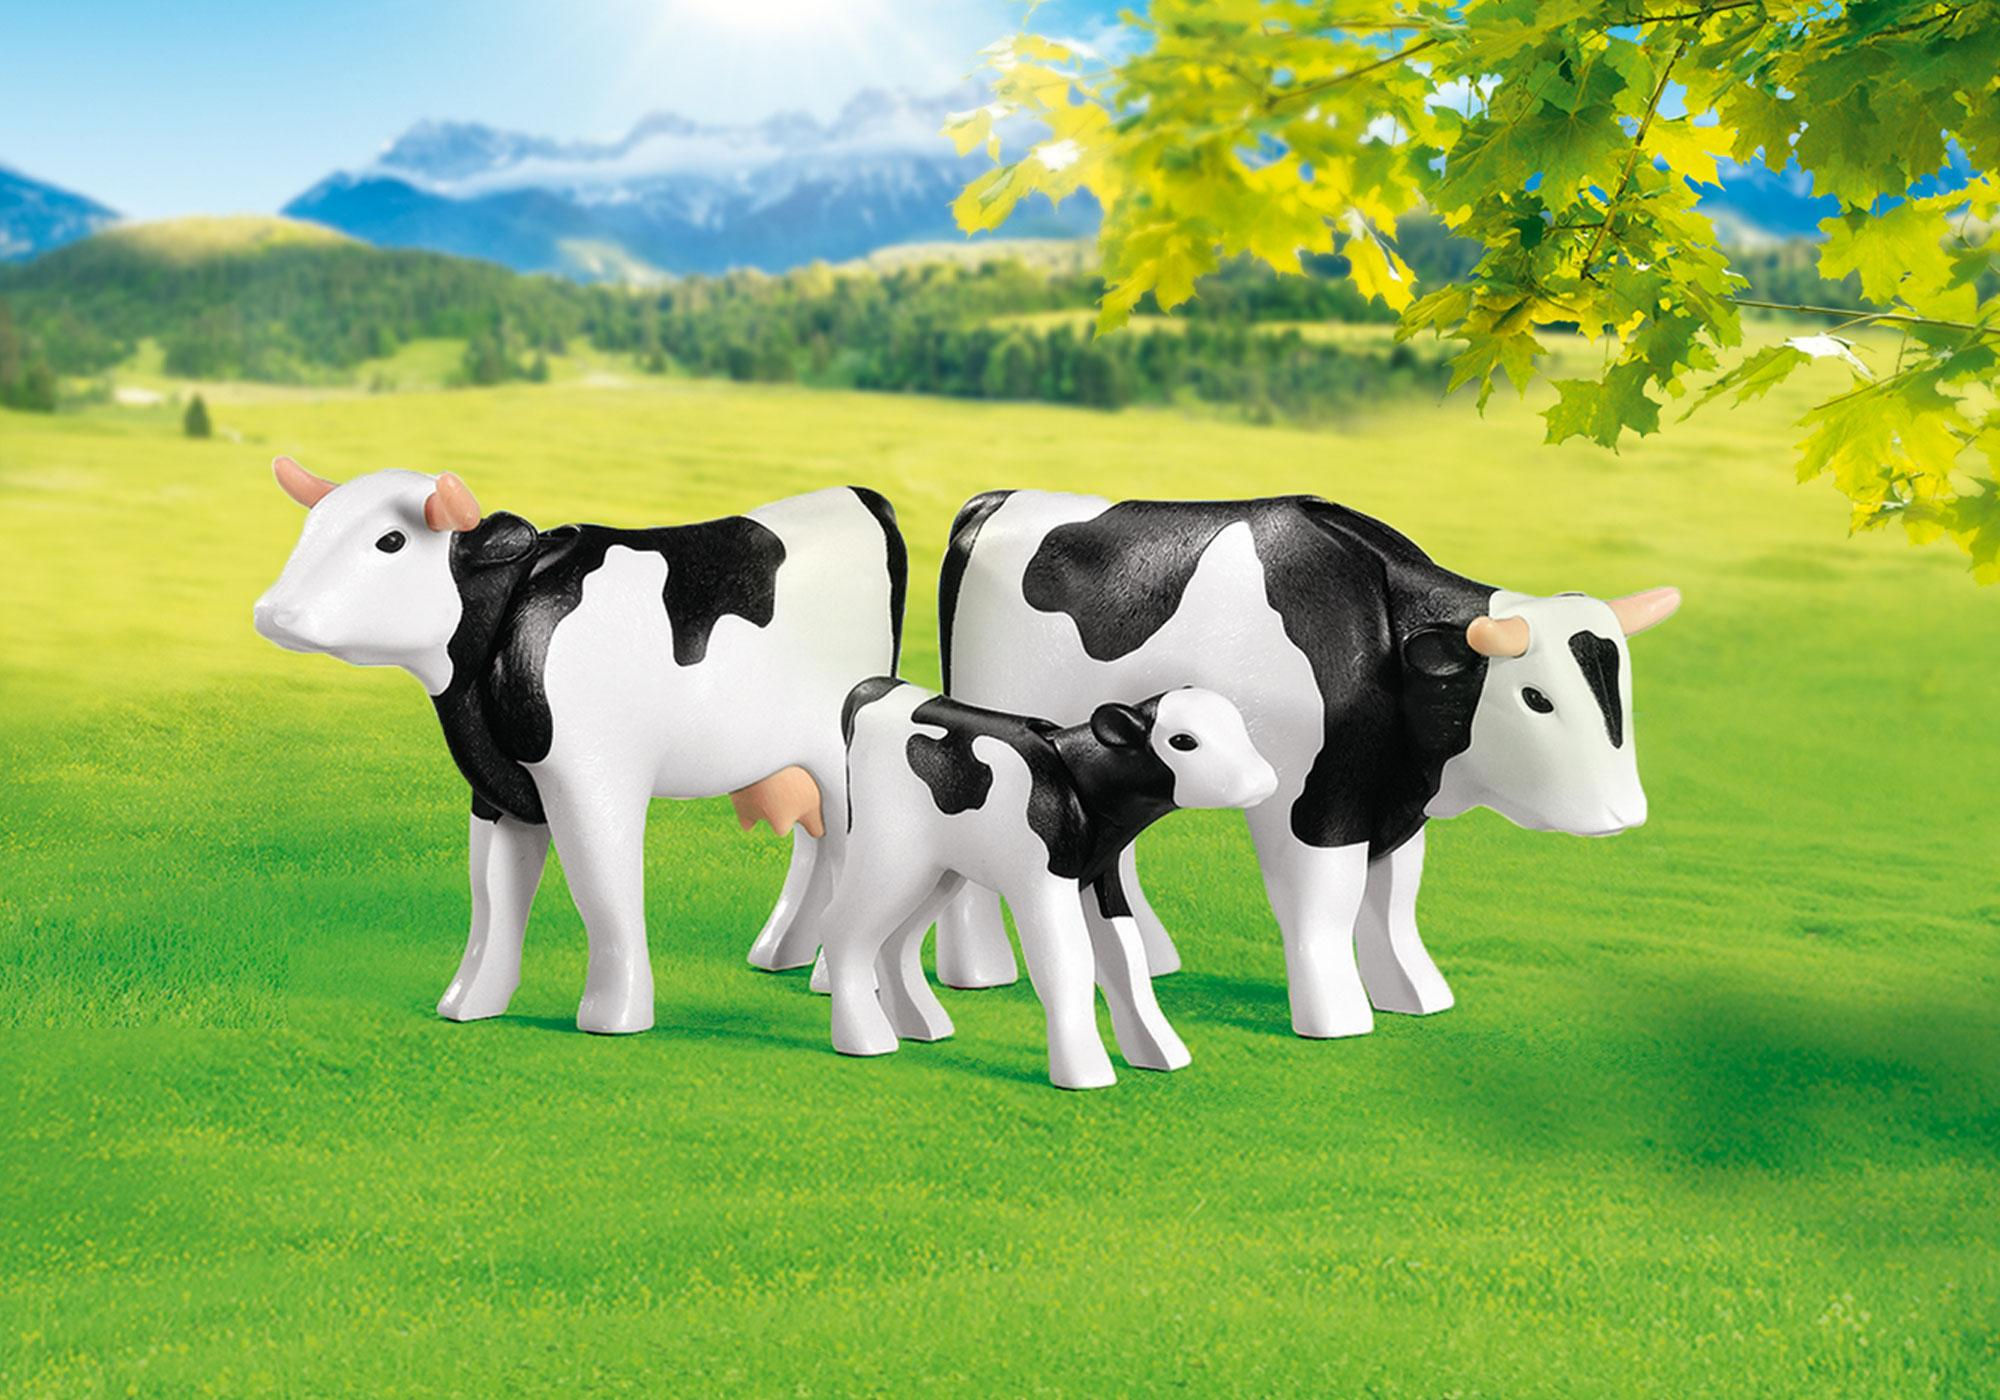 http://media.playmobil.com/i/playmobil/7892_product_detail/2 Cows with Calf